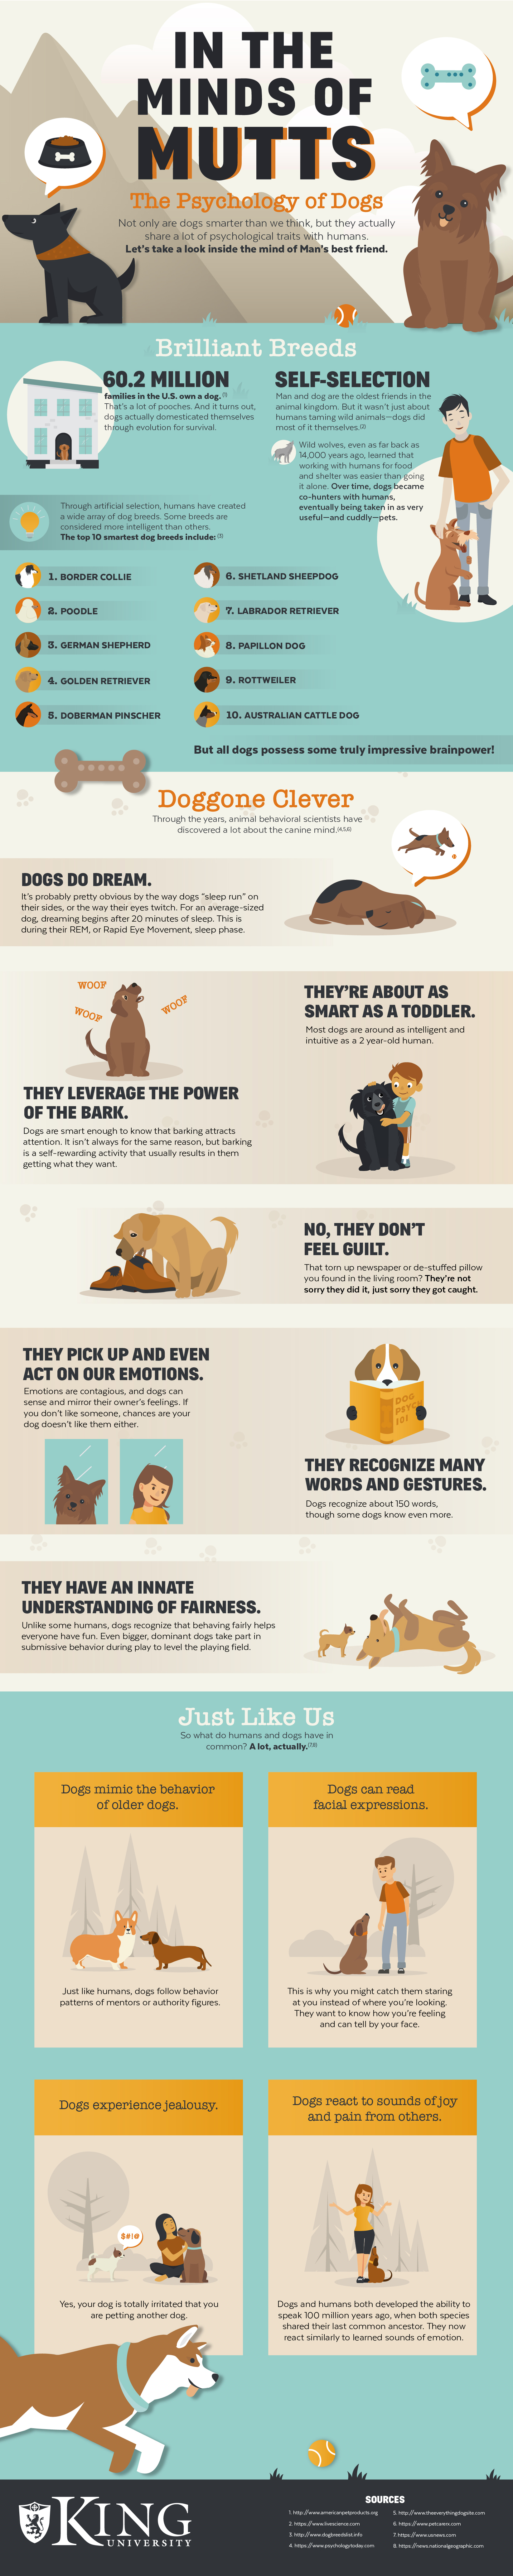 The Psychology of Dogs Infographic